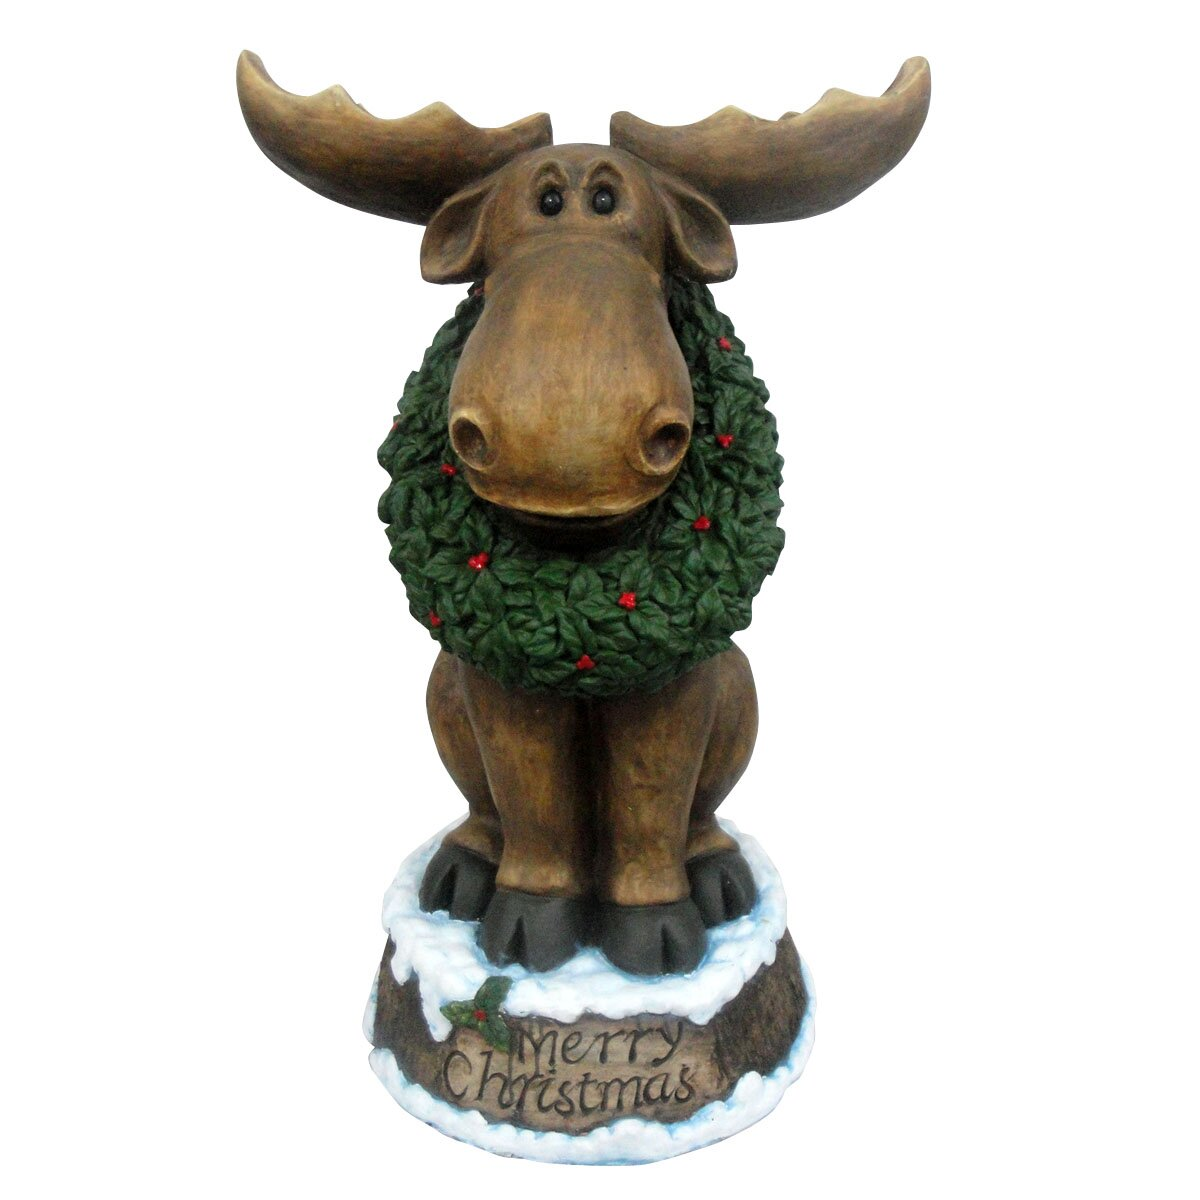 Design House Merry Christmas Moose with Wreath LED Light-Up Statue & Reviews   Wayfair